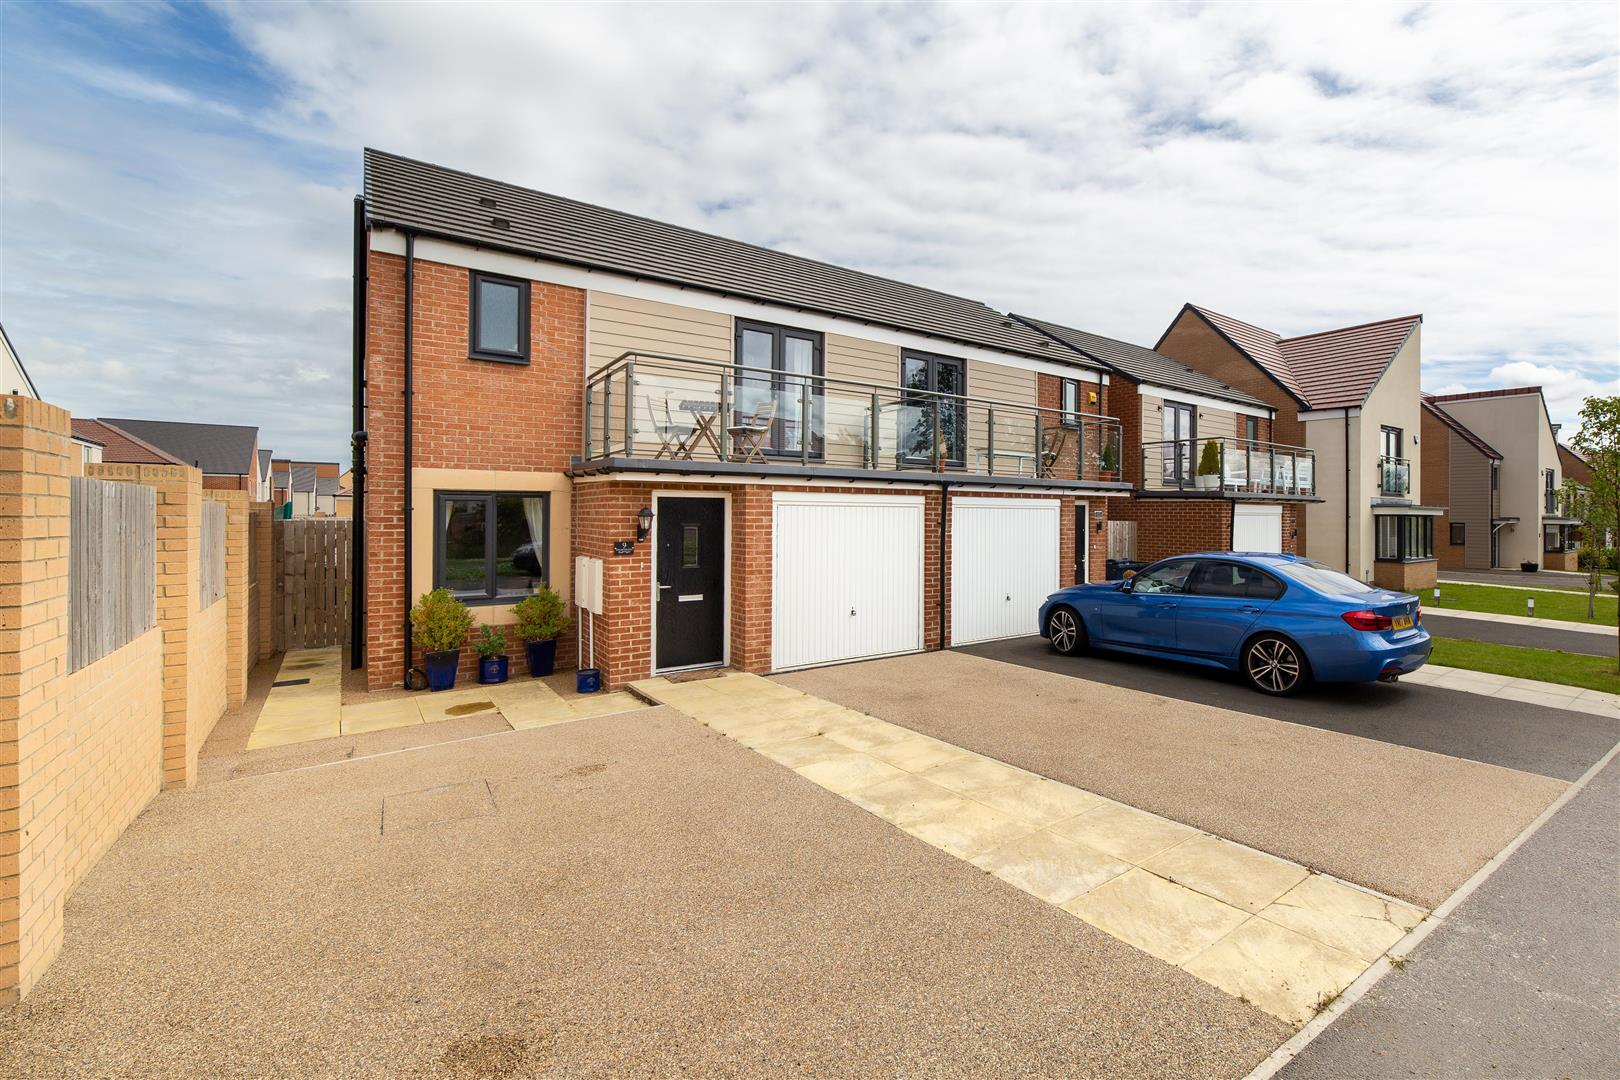 3 bed semi-detached house for sale in Newcastle Upon Tyne, NE13 9DQ - Property Image 1